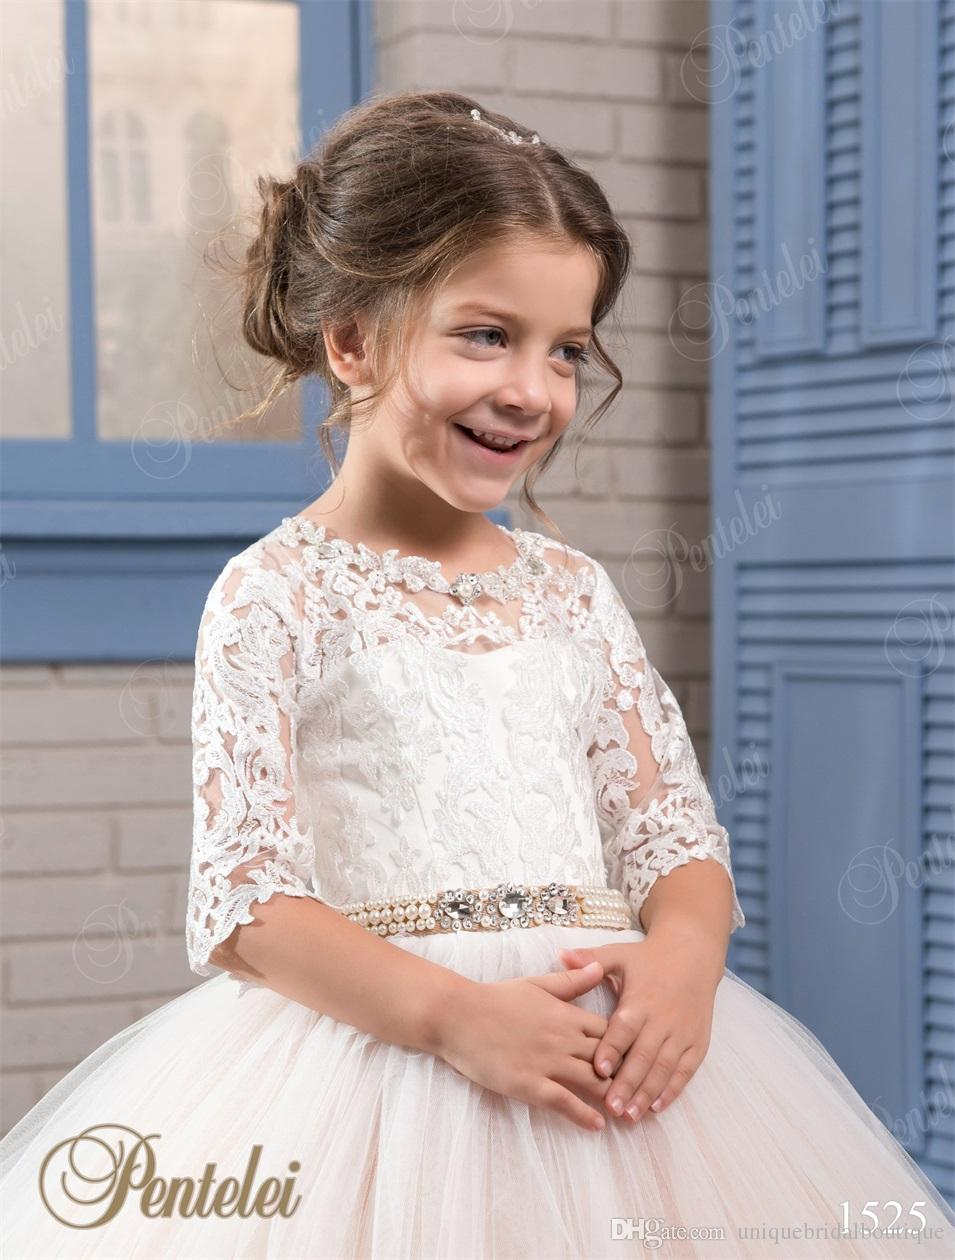 Cheap Flower Girls Dresses 2021 Pentelei with 3/4 Long Sleeves and Lace-Up Back Appliques Tulle Ballgown Little Girls Gowns for Party Prom